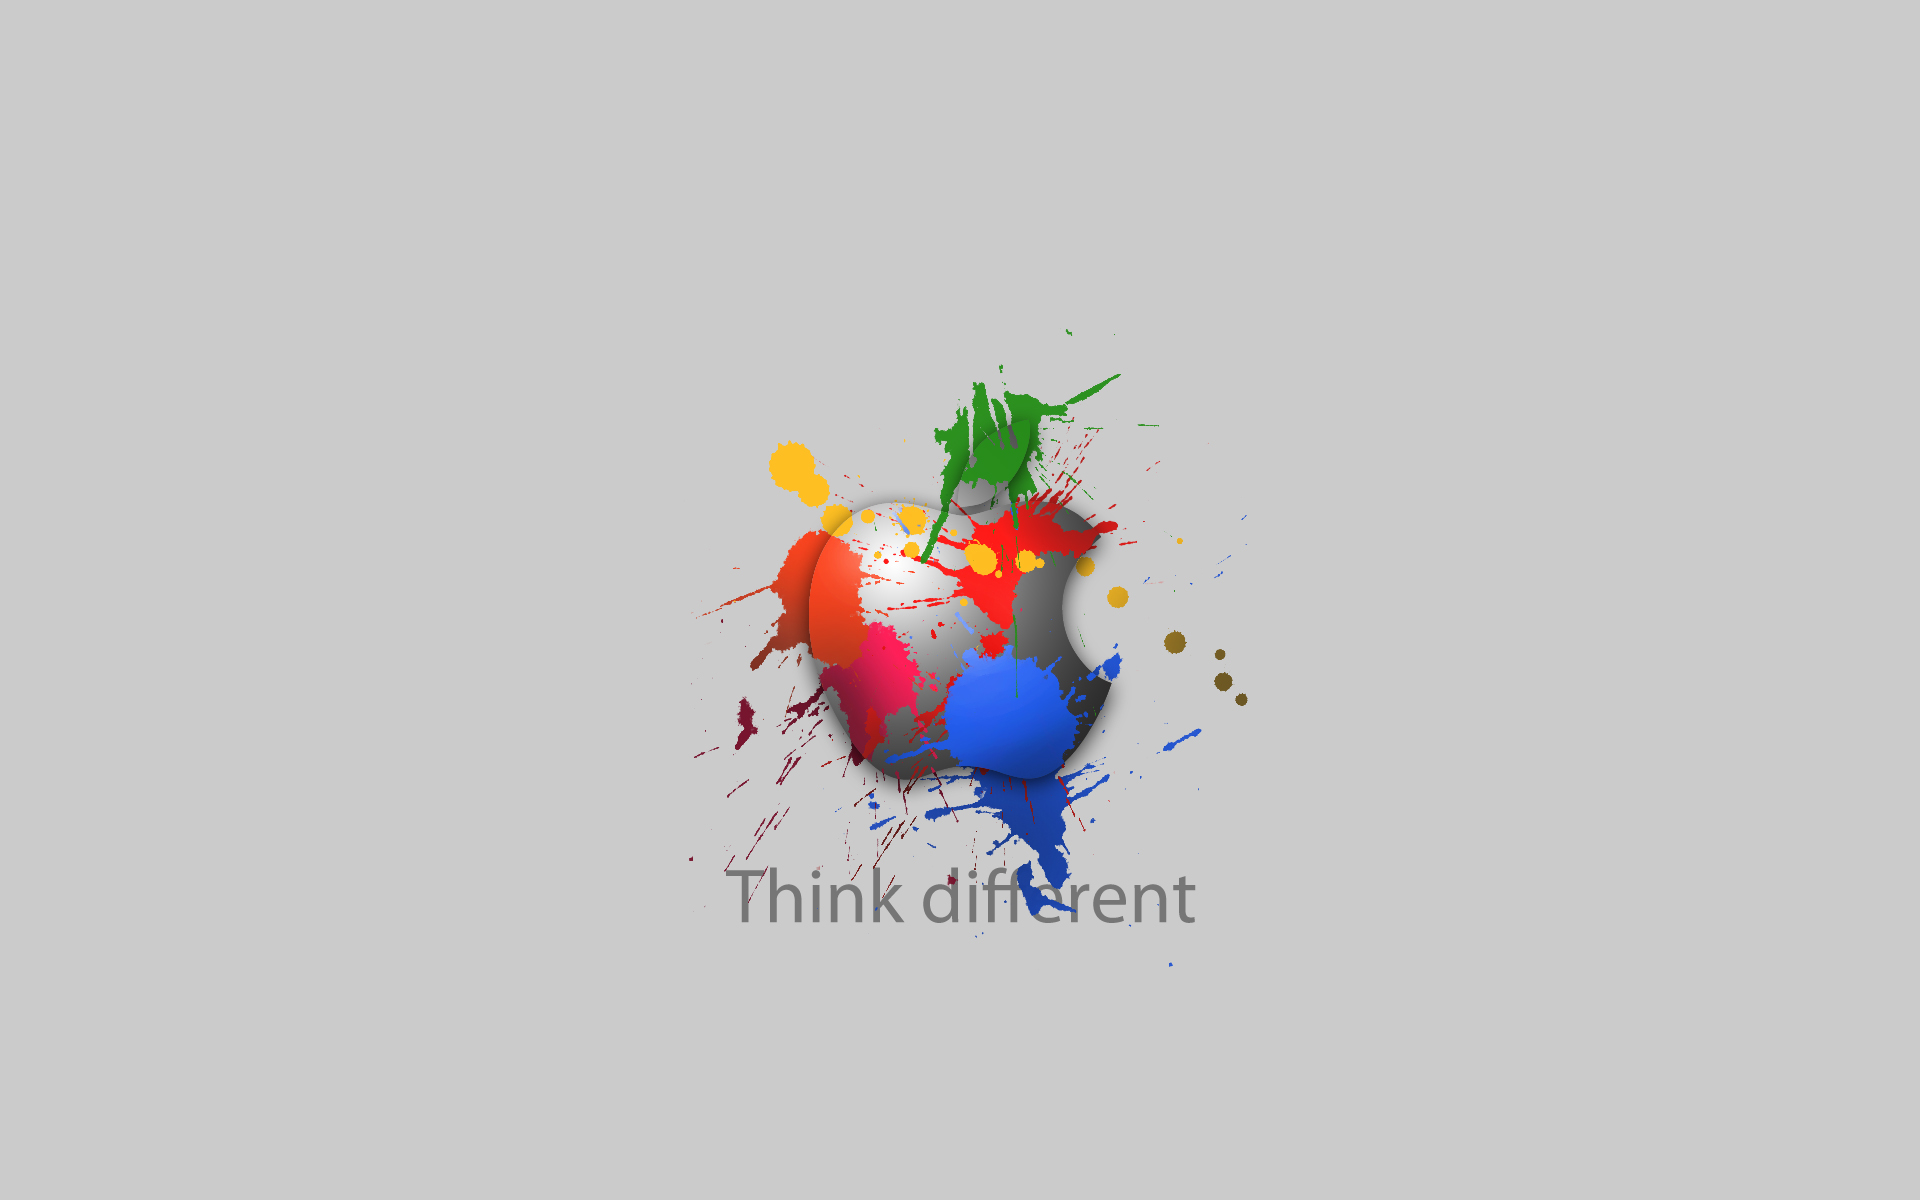 thinkdiff